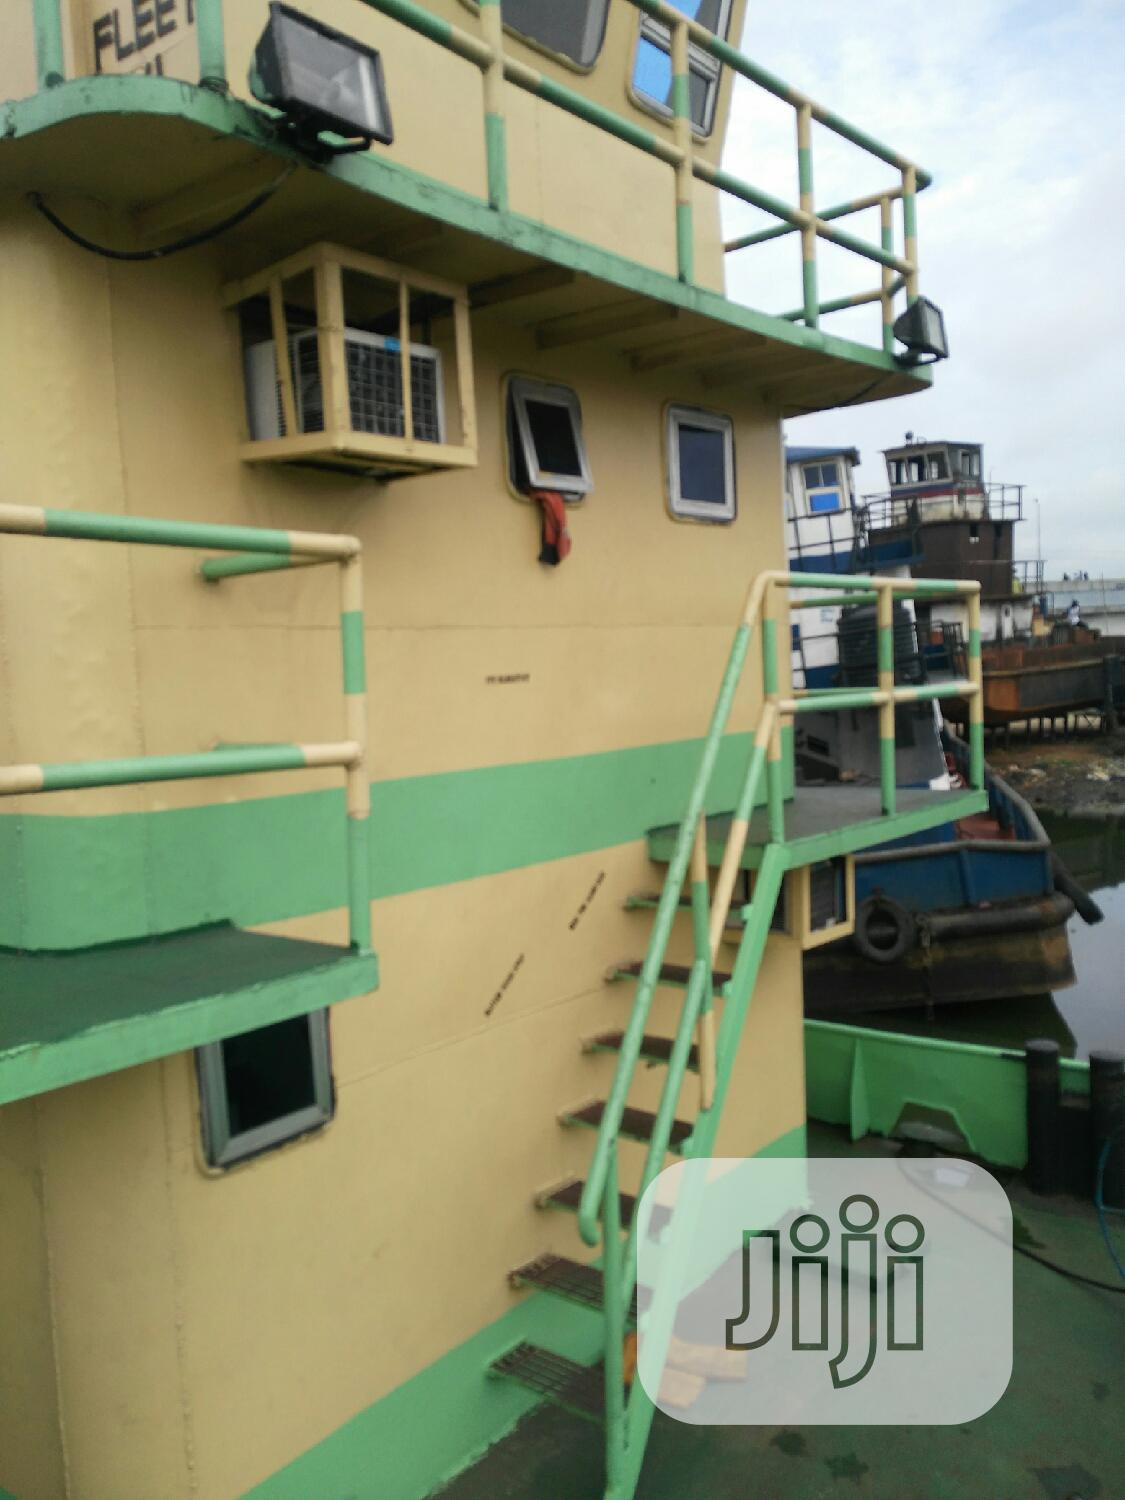 Tugboat For Sale In Port Harcourt   Watercraft & Boats for sale in Port-Harcourt, Rivers State, Nigeria